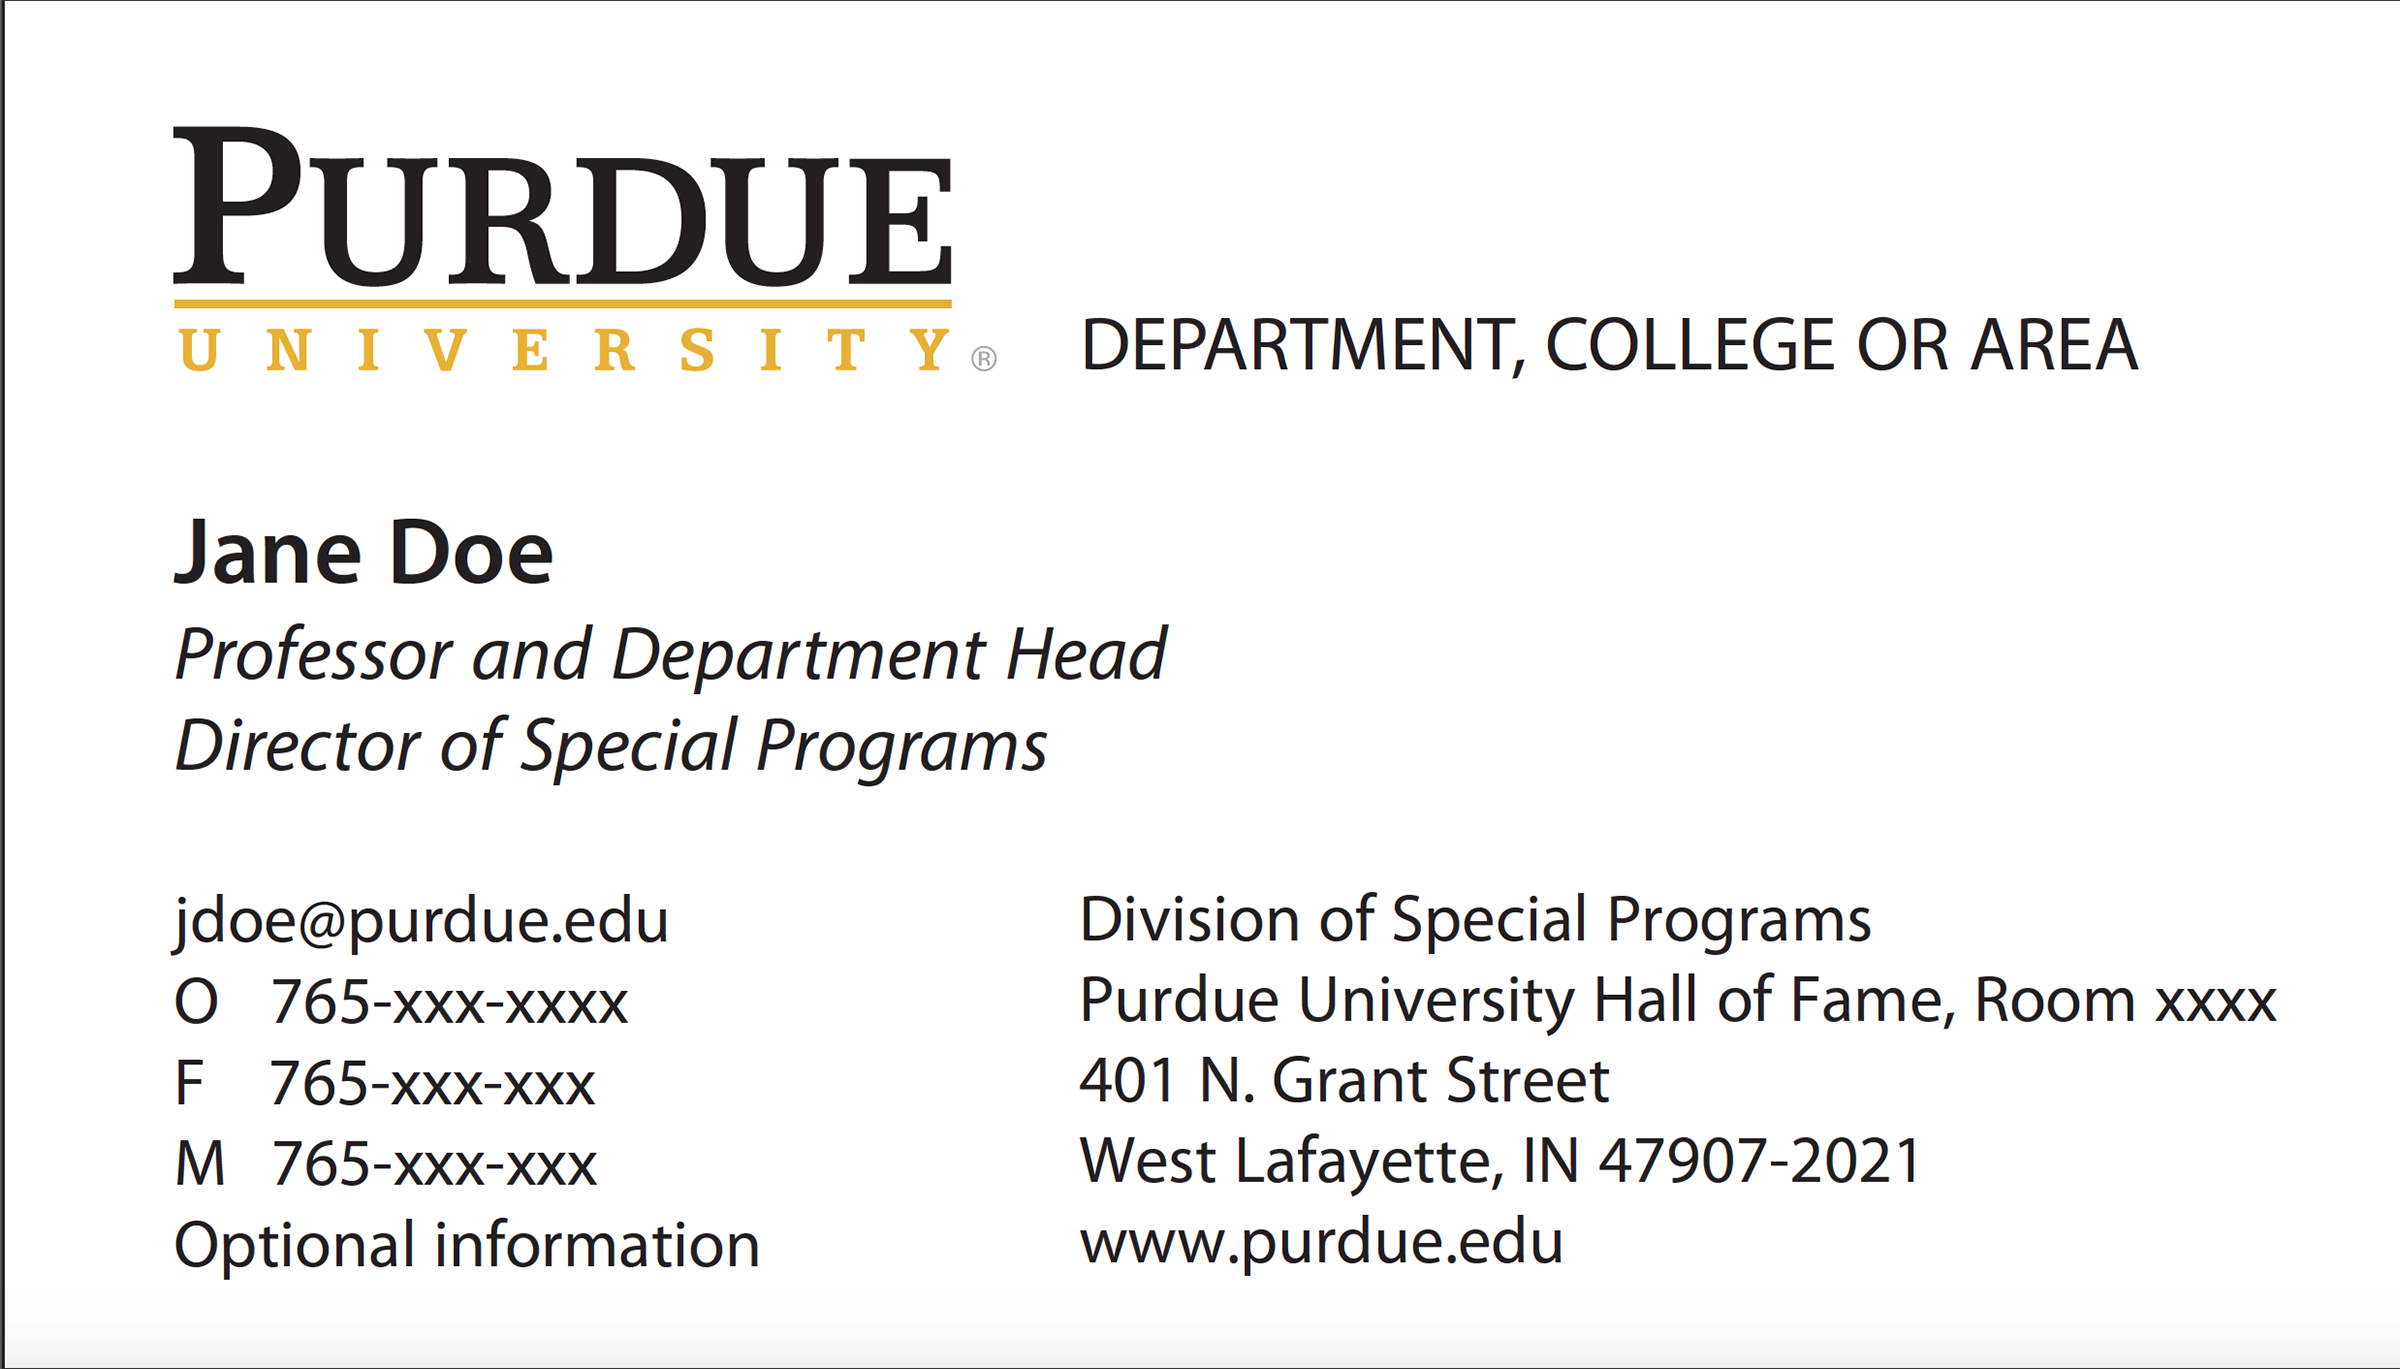 New business card template now online purdue university purdues new standard business card layout fbccfo Gallery